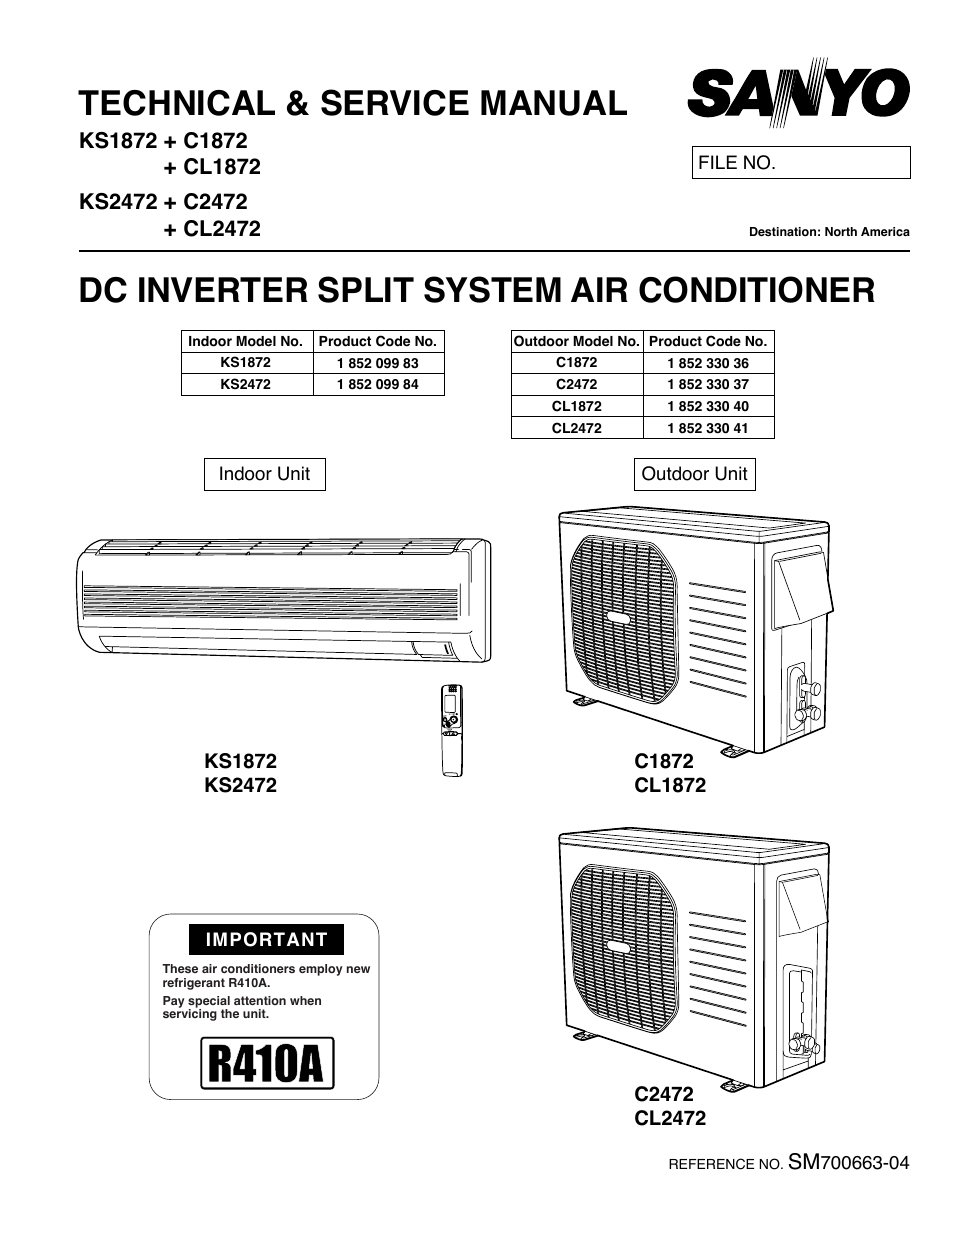 sanyo cl2472 user manual 117 pages also for c1872 Sanyo HVAC Service Manuals Split Air Conditioner